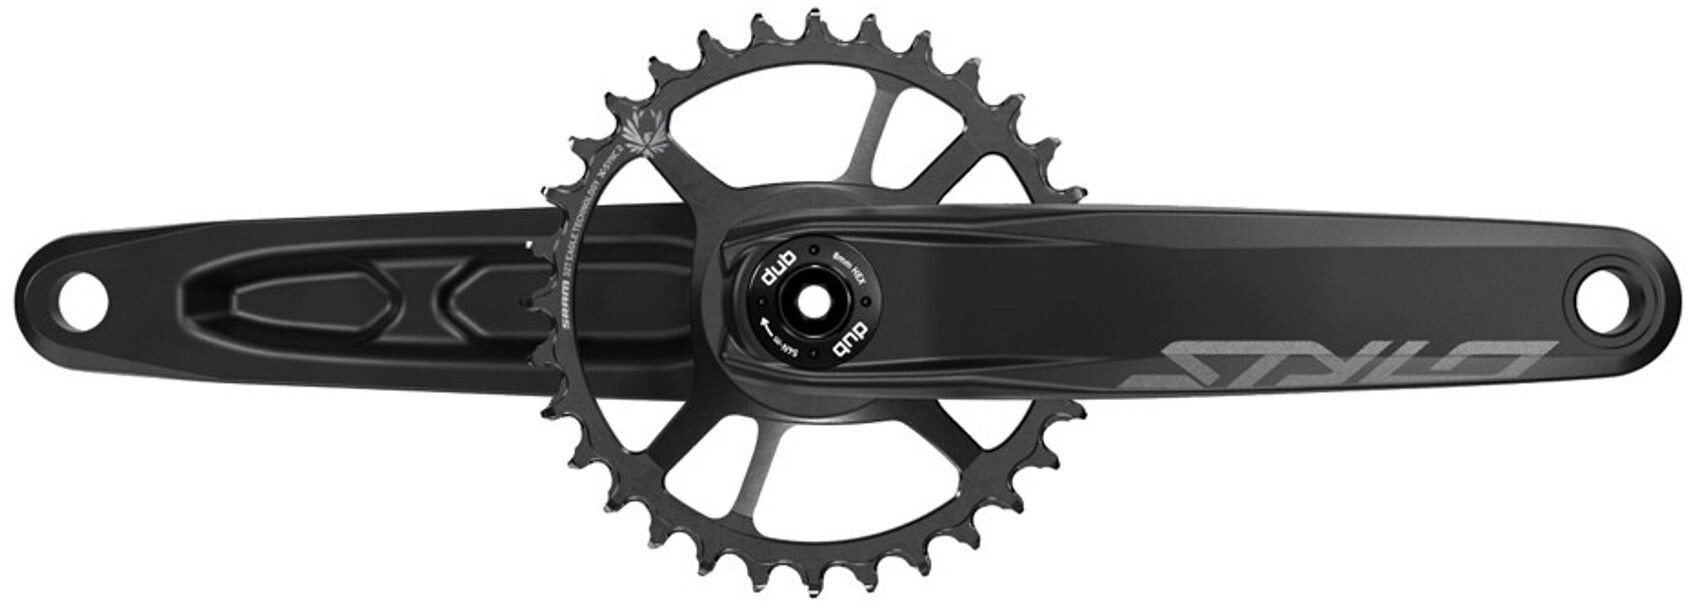 Truvativ Stylo 6K Eagle DUB Krank Direct Mount 32 tænder 12-speed, black (2019) | Crankset